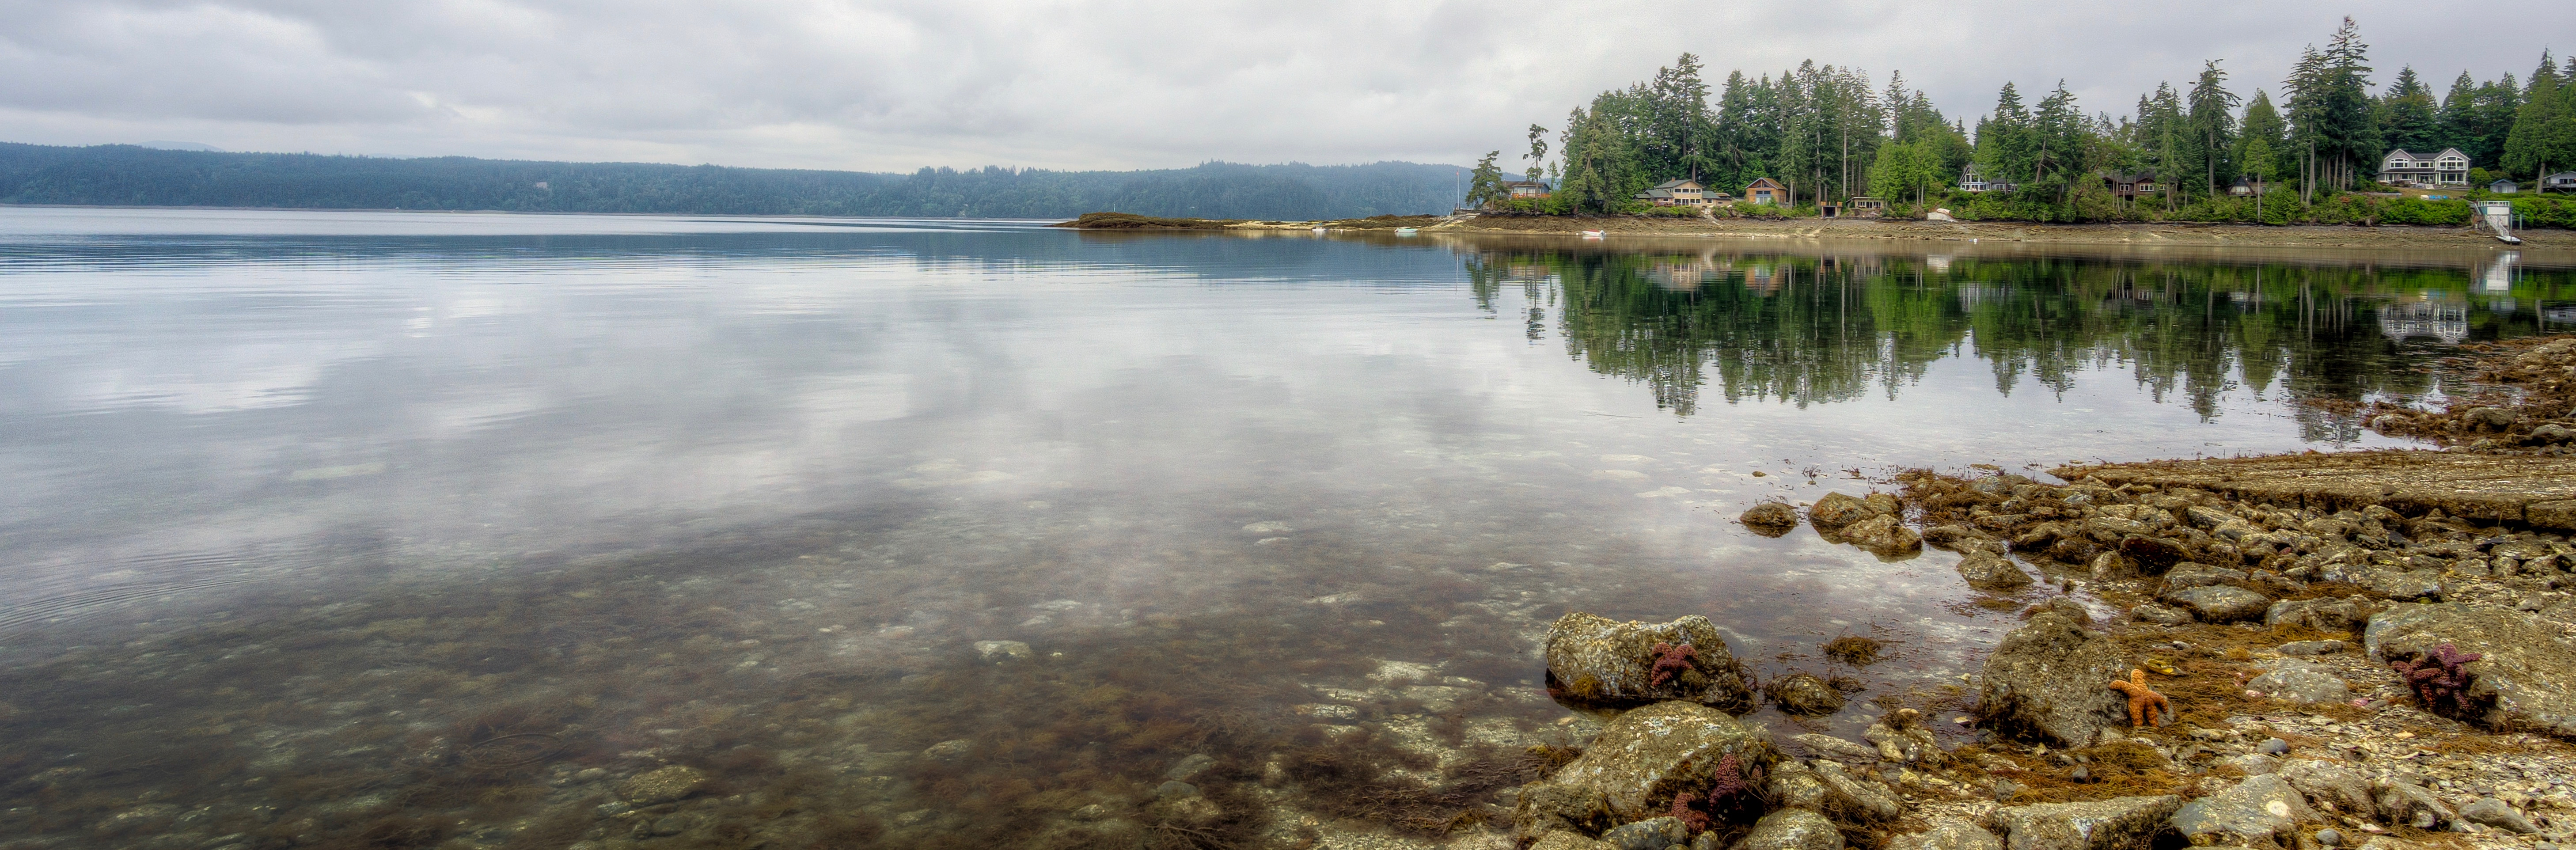 Hood Canal Redux_Flickr_Decaseconds_2016